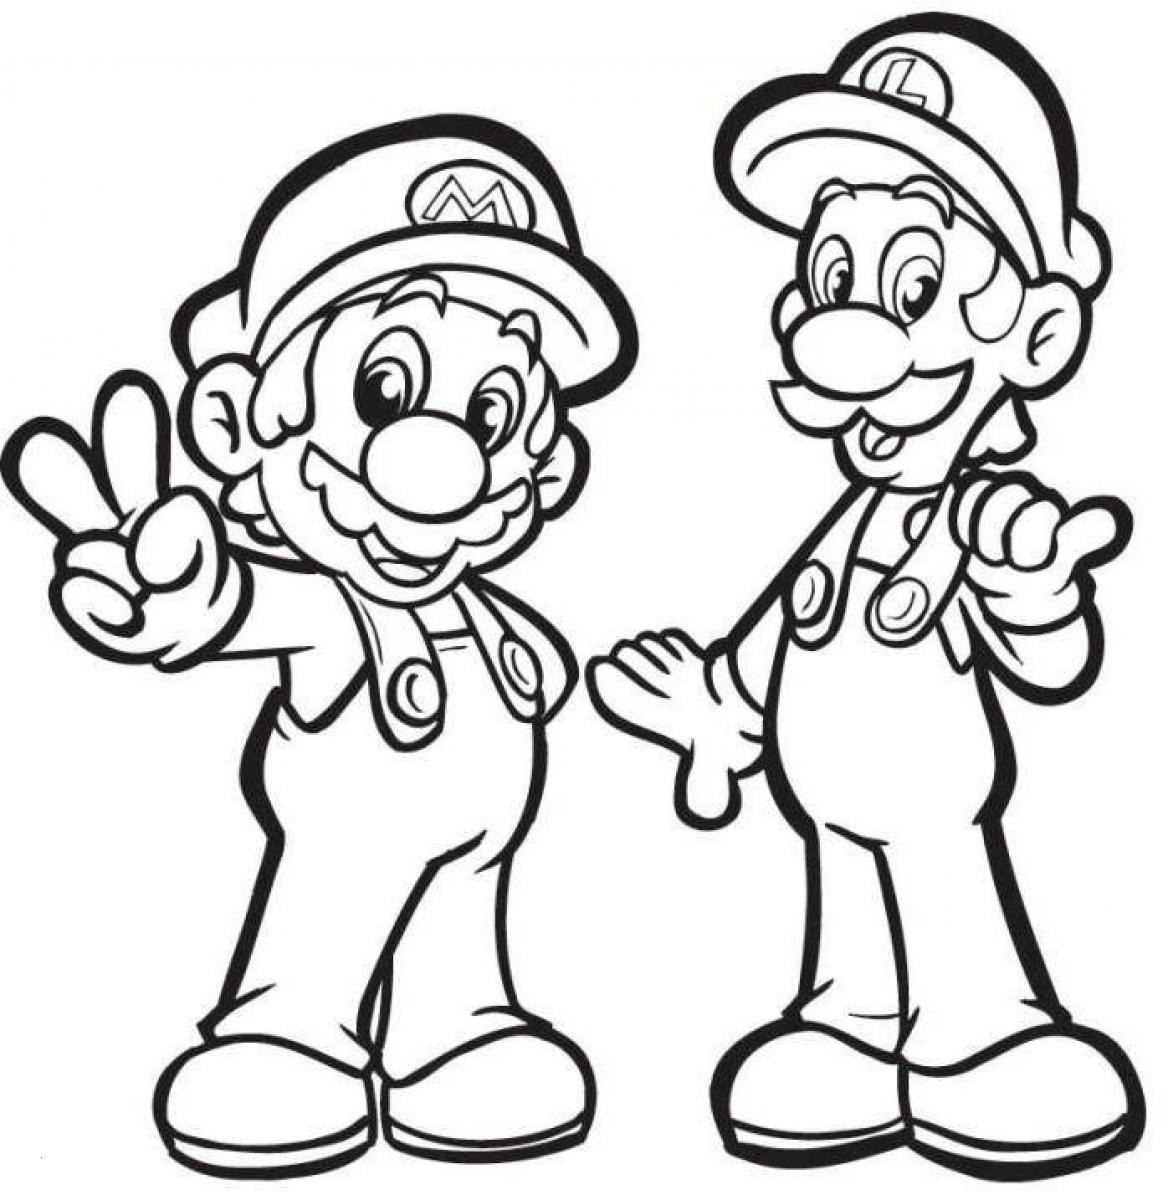 Super Mario Ausmalbilder Das Beste Von Mario Coloring Pages for Boys Download Ausmalbilder Super Mario Bilder